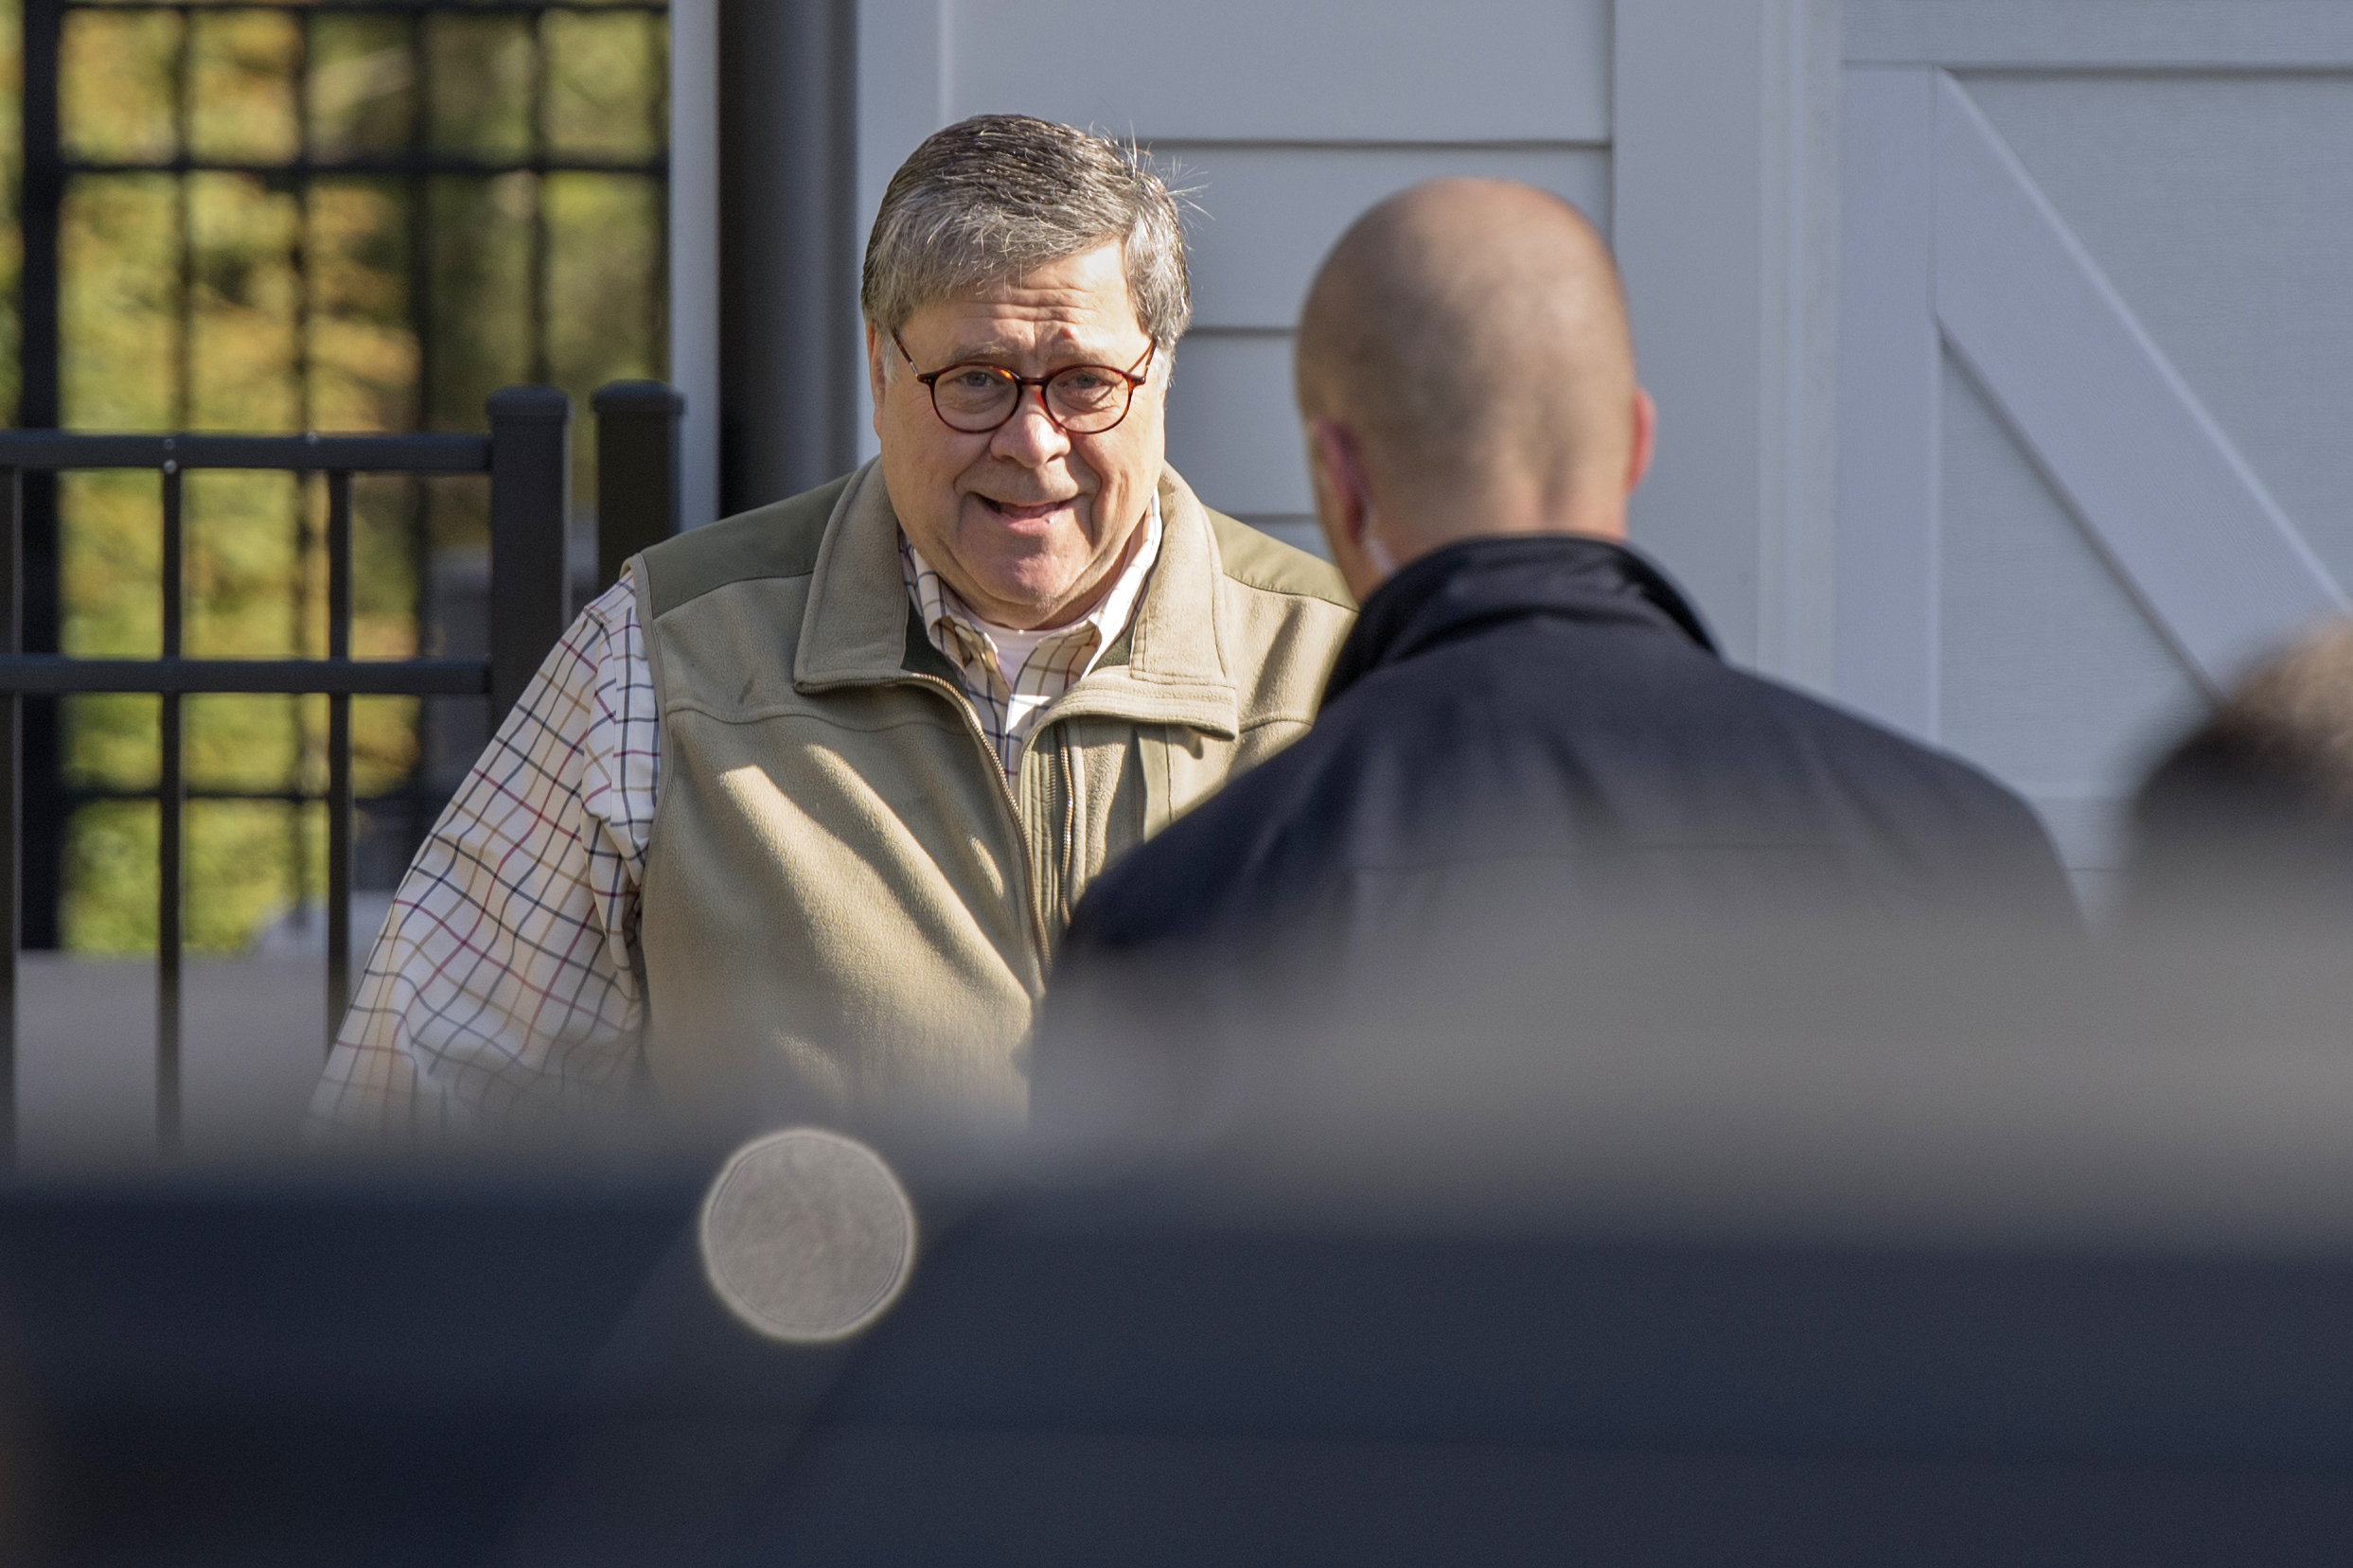 William Barr arrives at Justice Department as speculation swirls around Mueller report